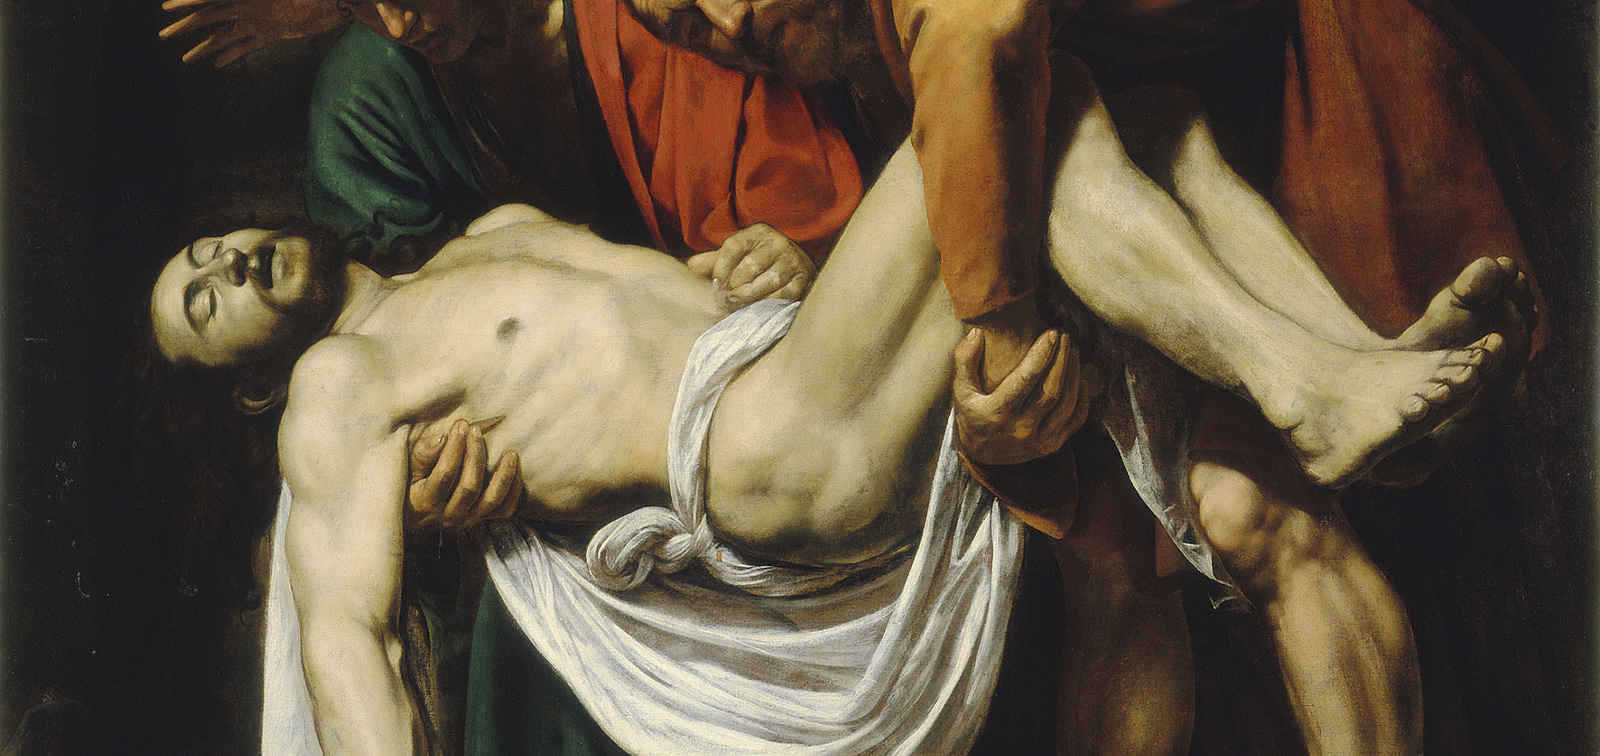 The invited work: The Entombment of Christ, Caravaggio